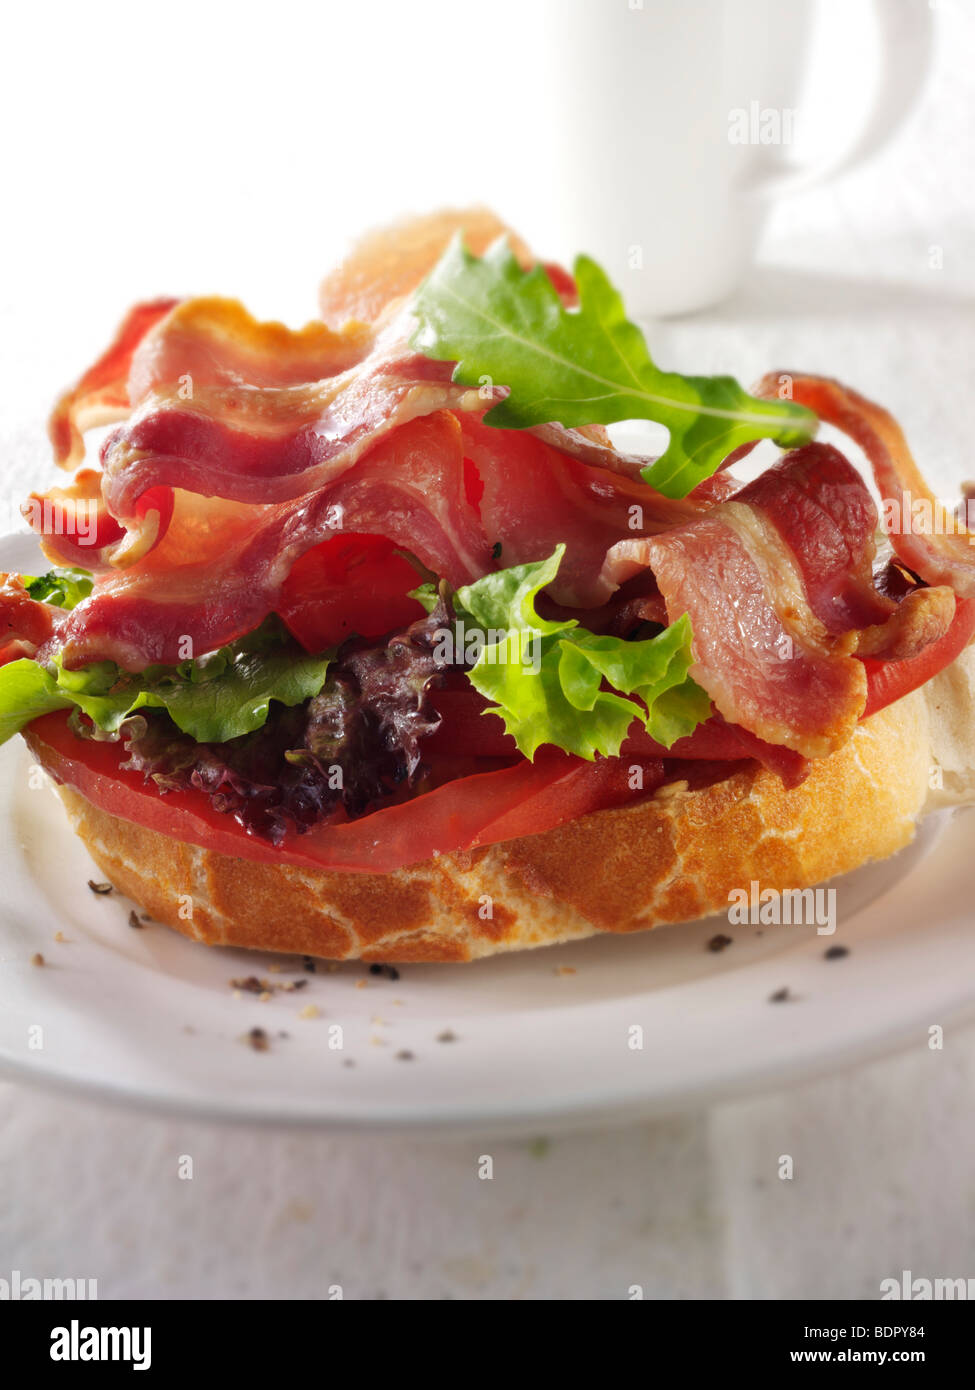 Bacon lettuce and tomato, BLT, sandwich - Stock Image